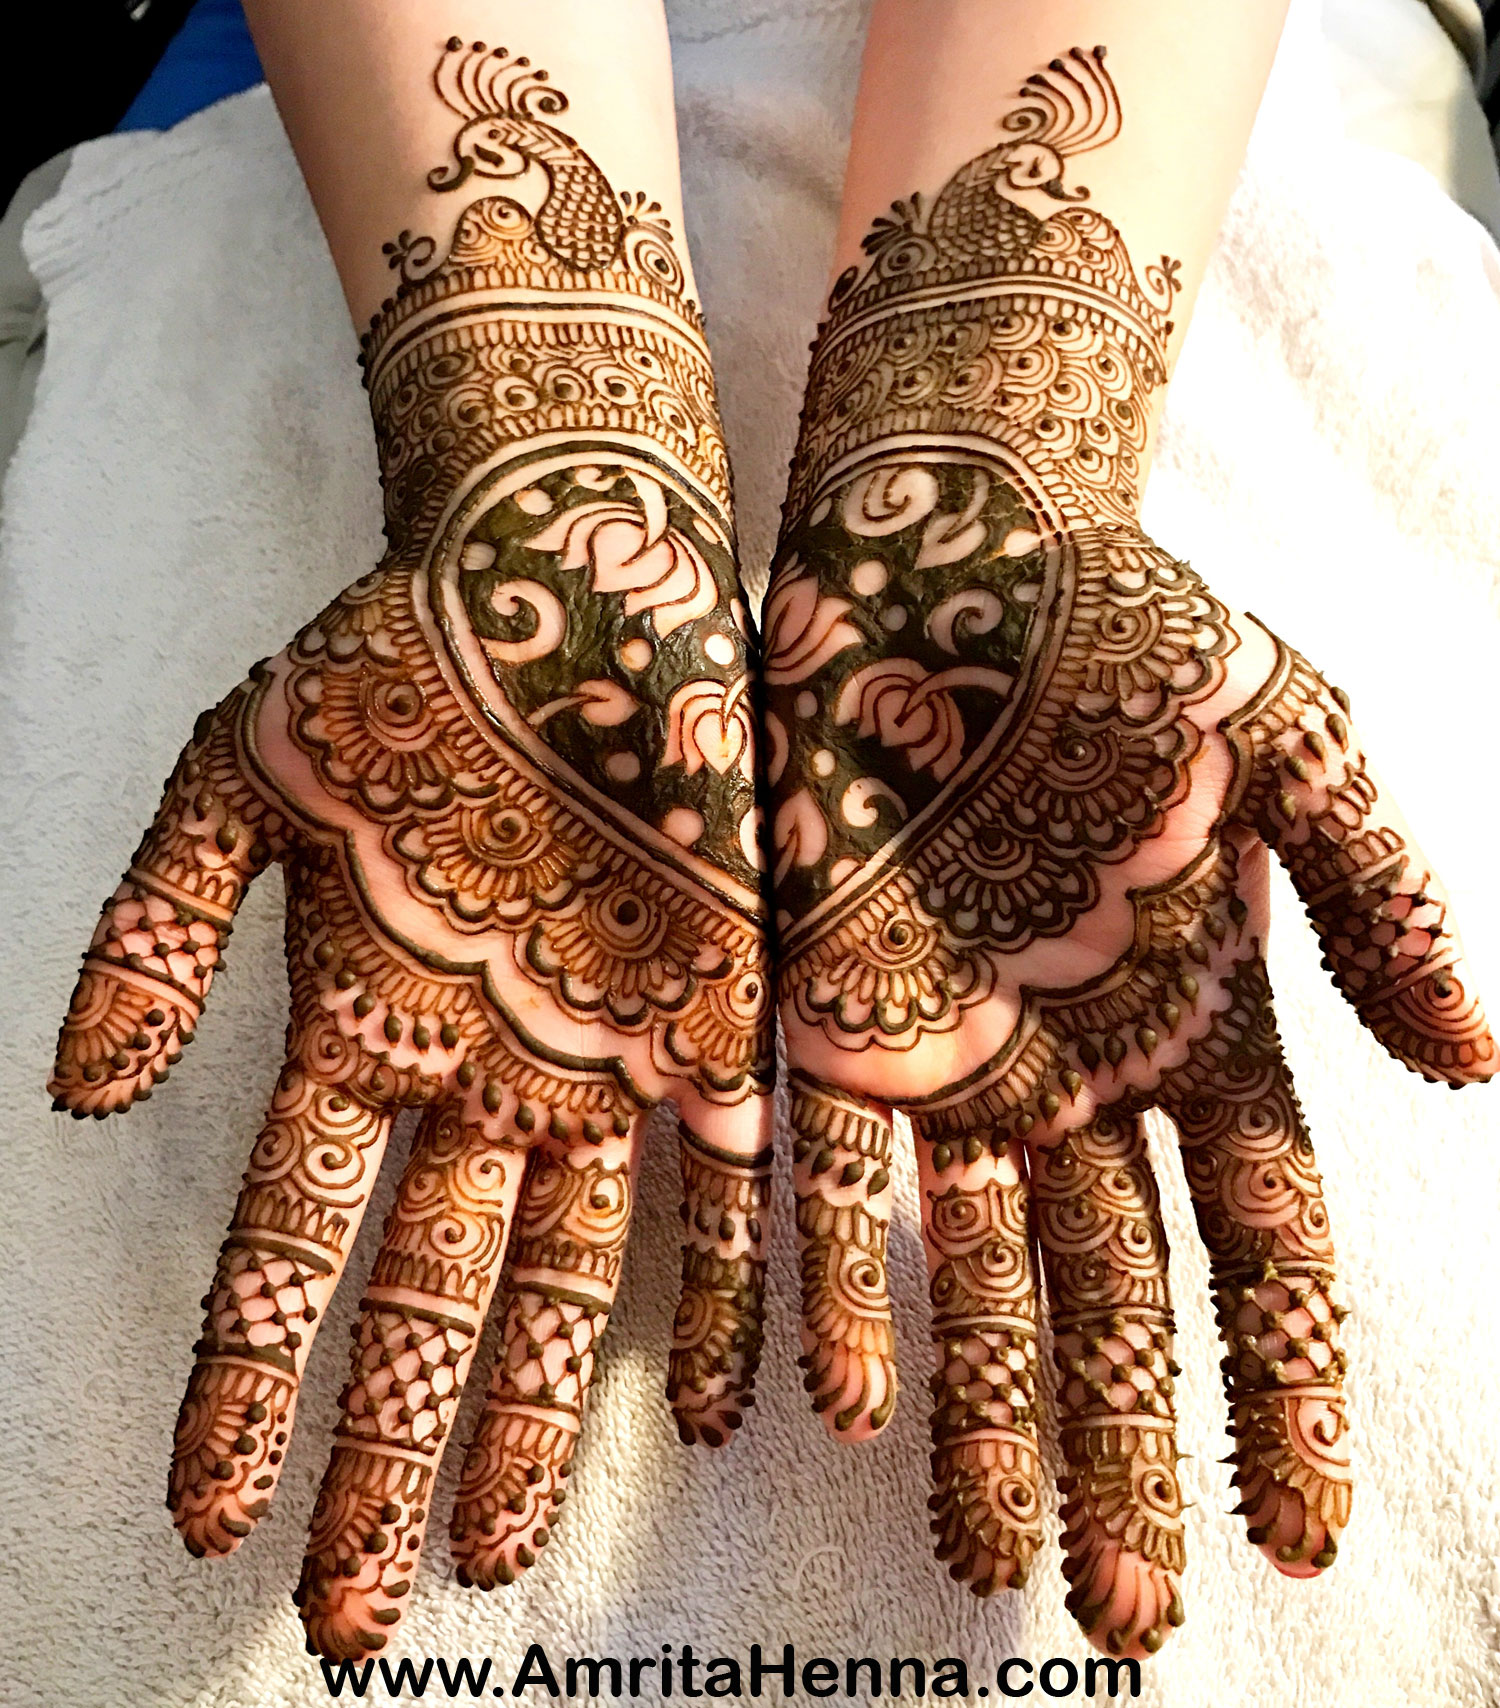 Top 10 Henna Designs For The Mother Of The Bride Henna Tattoo